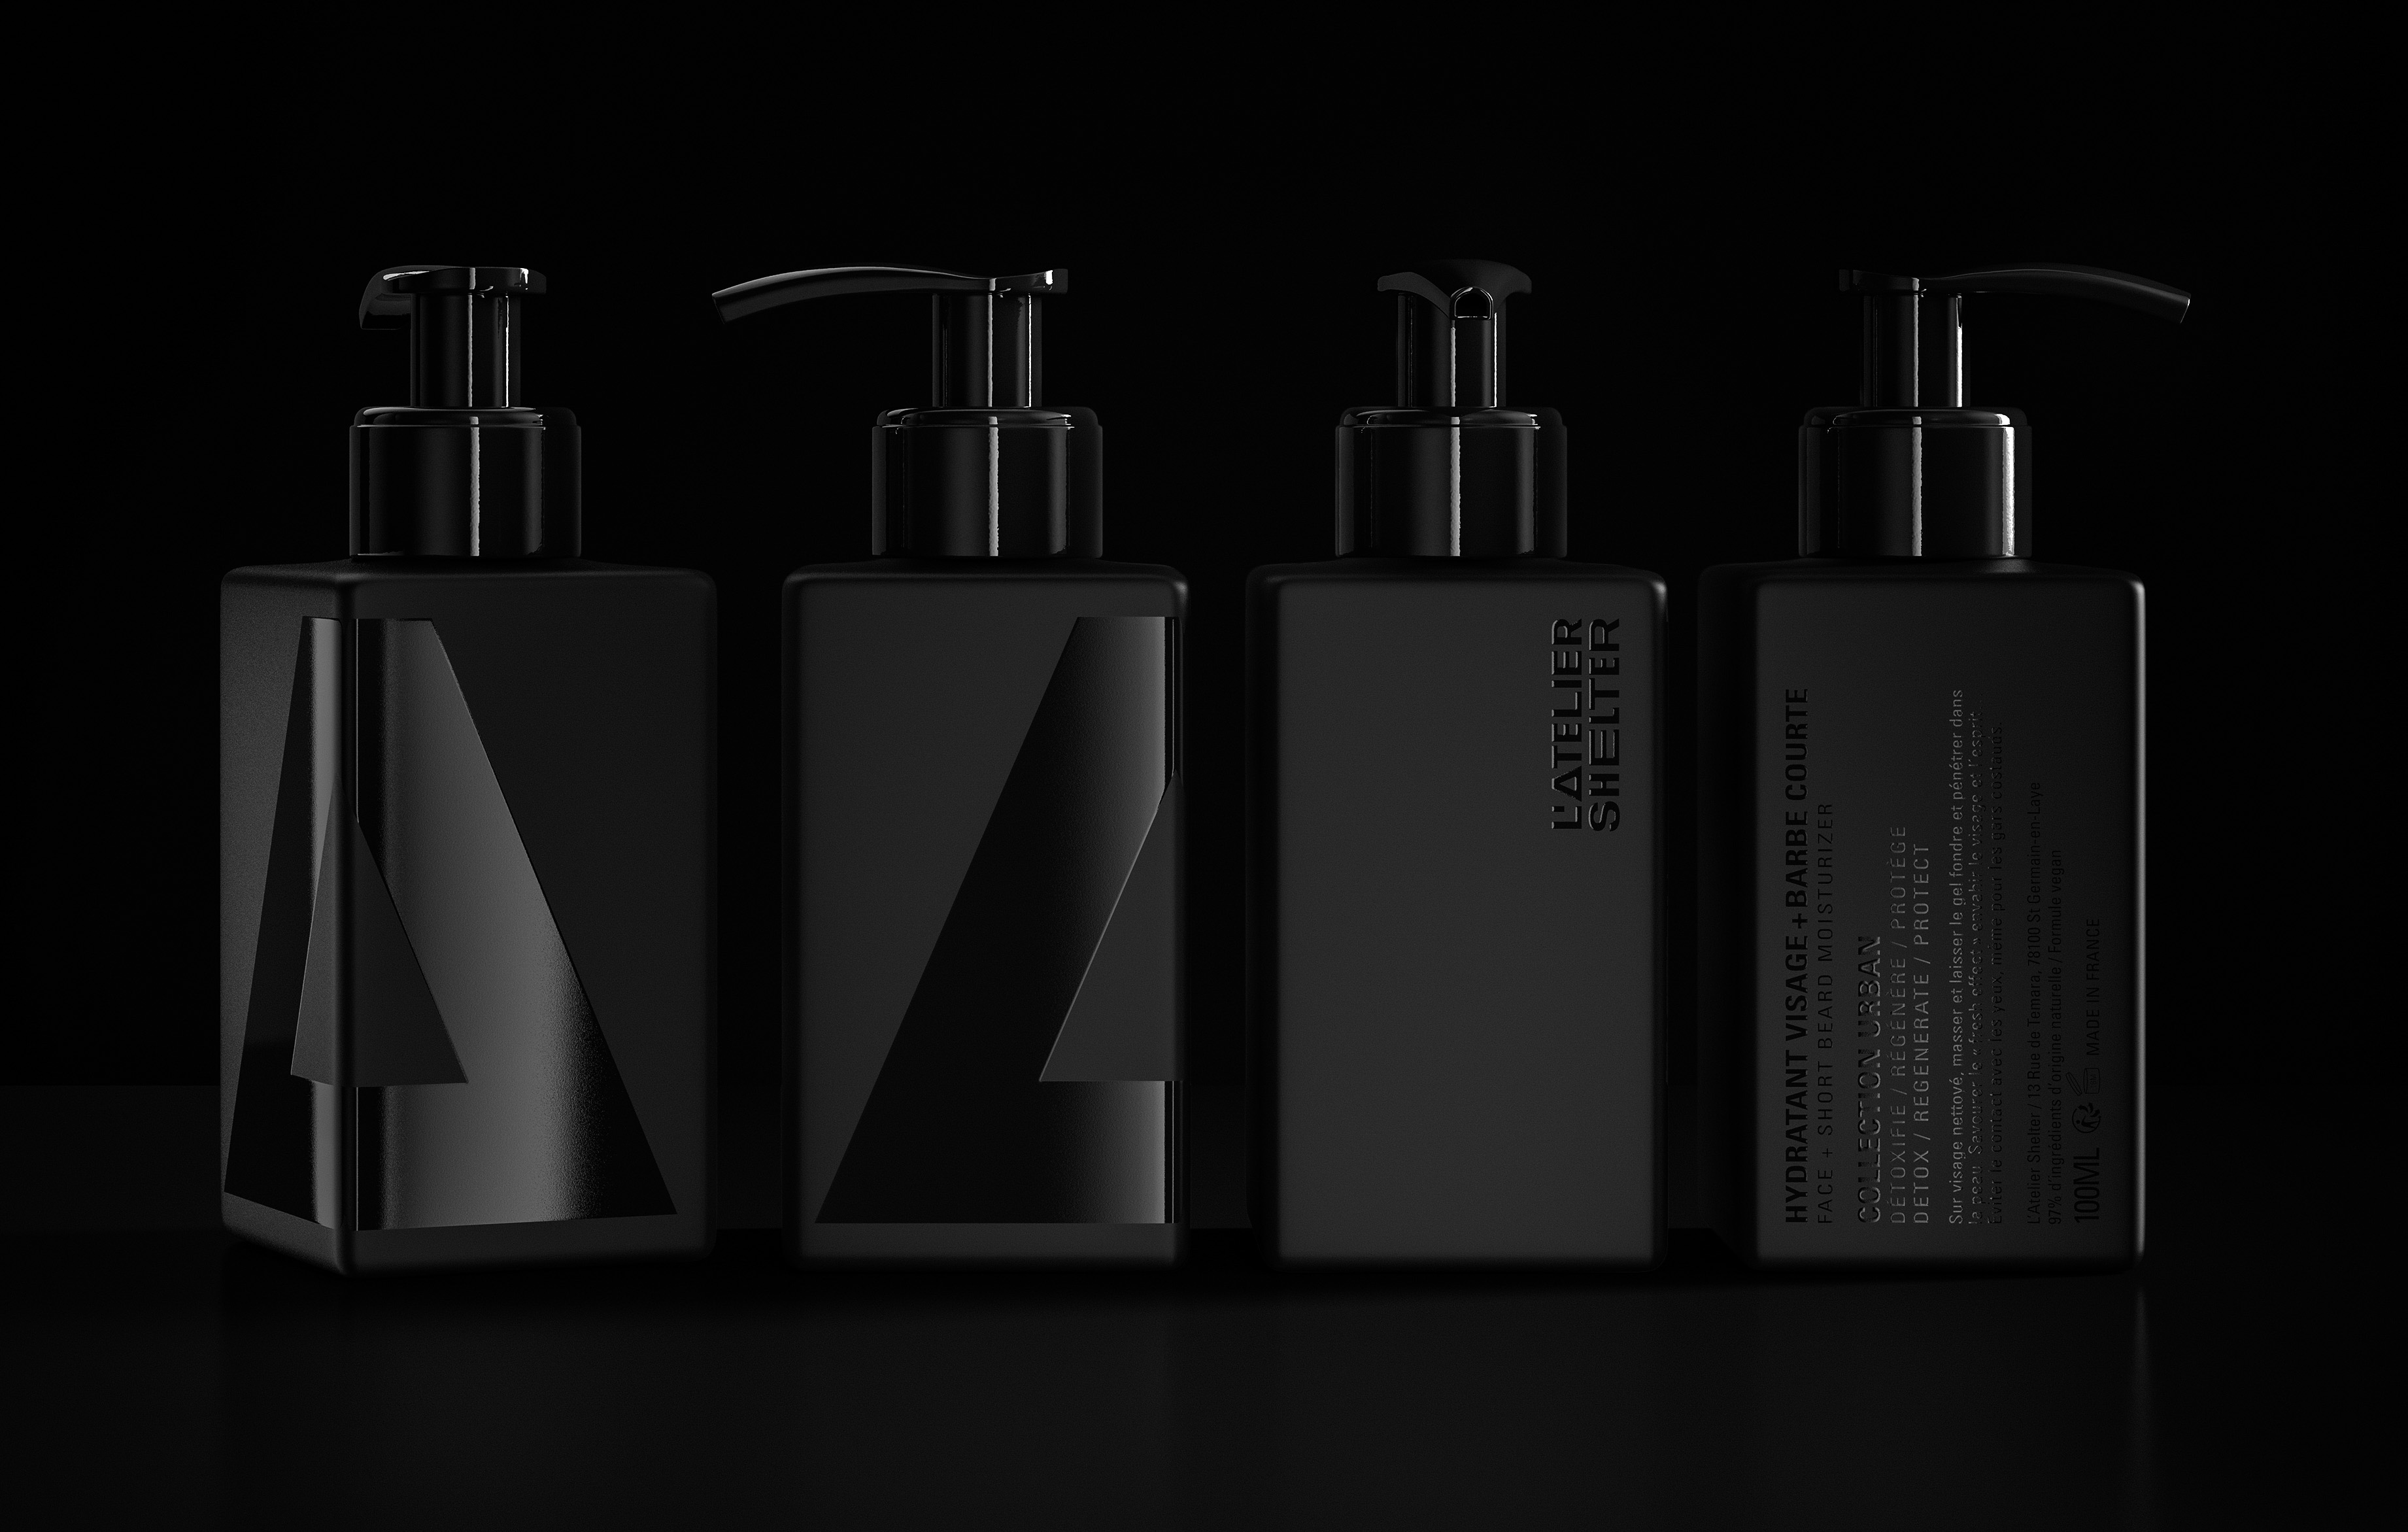 Appartement 103 Designs Disruptive Grooming Brand